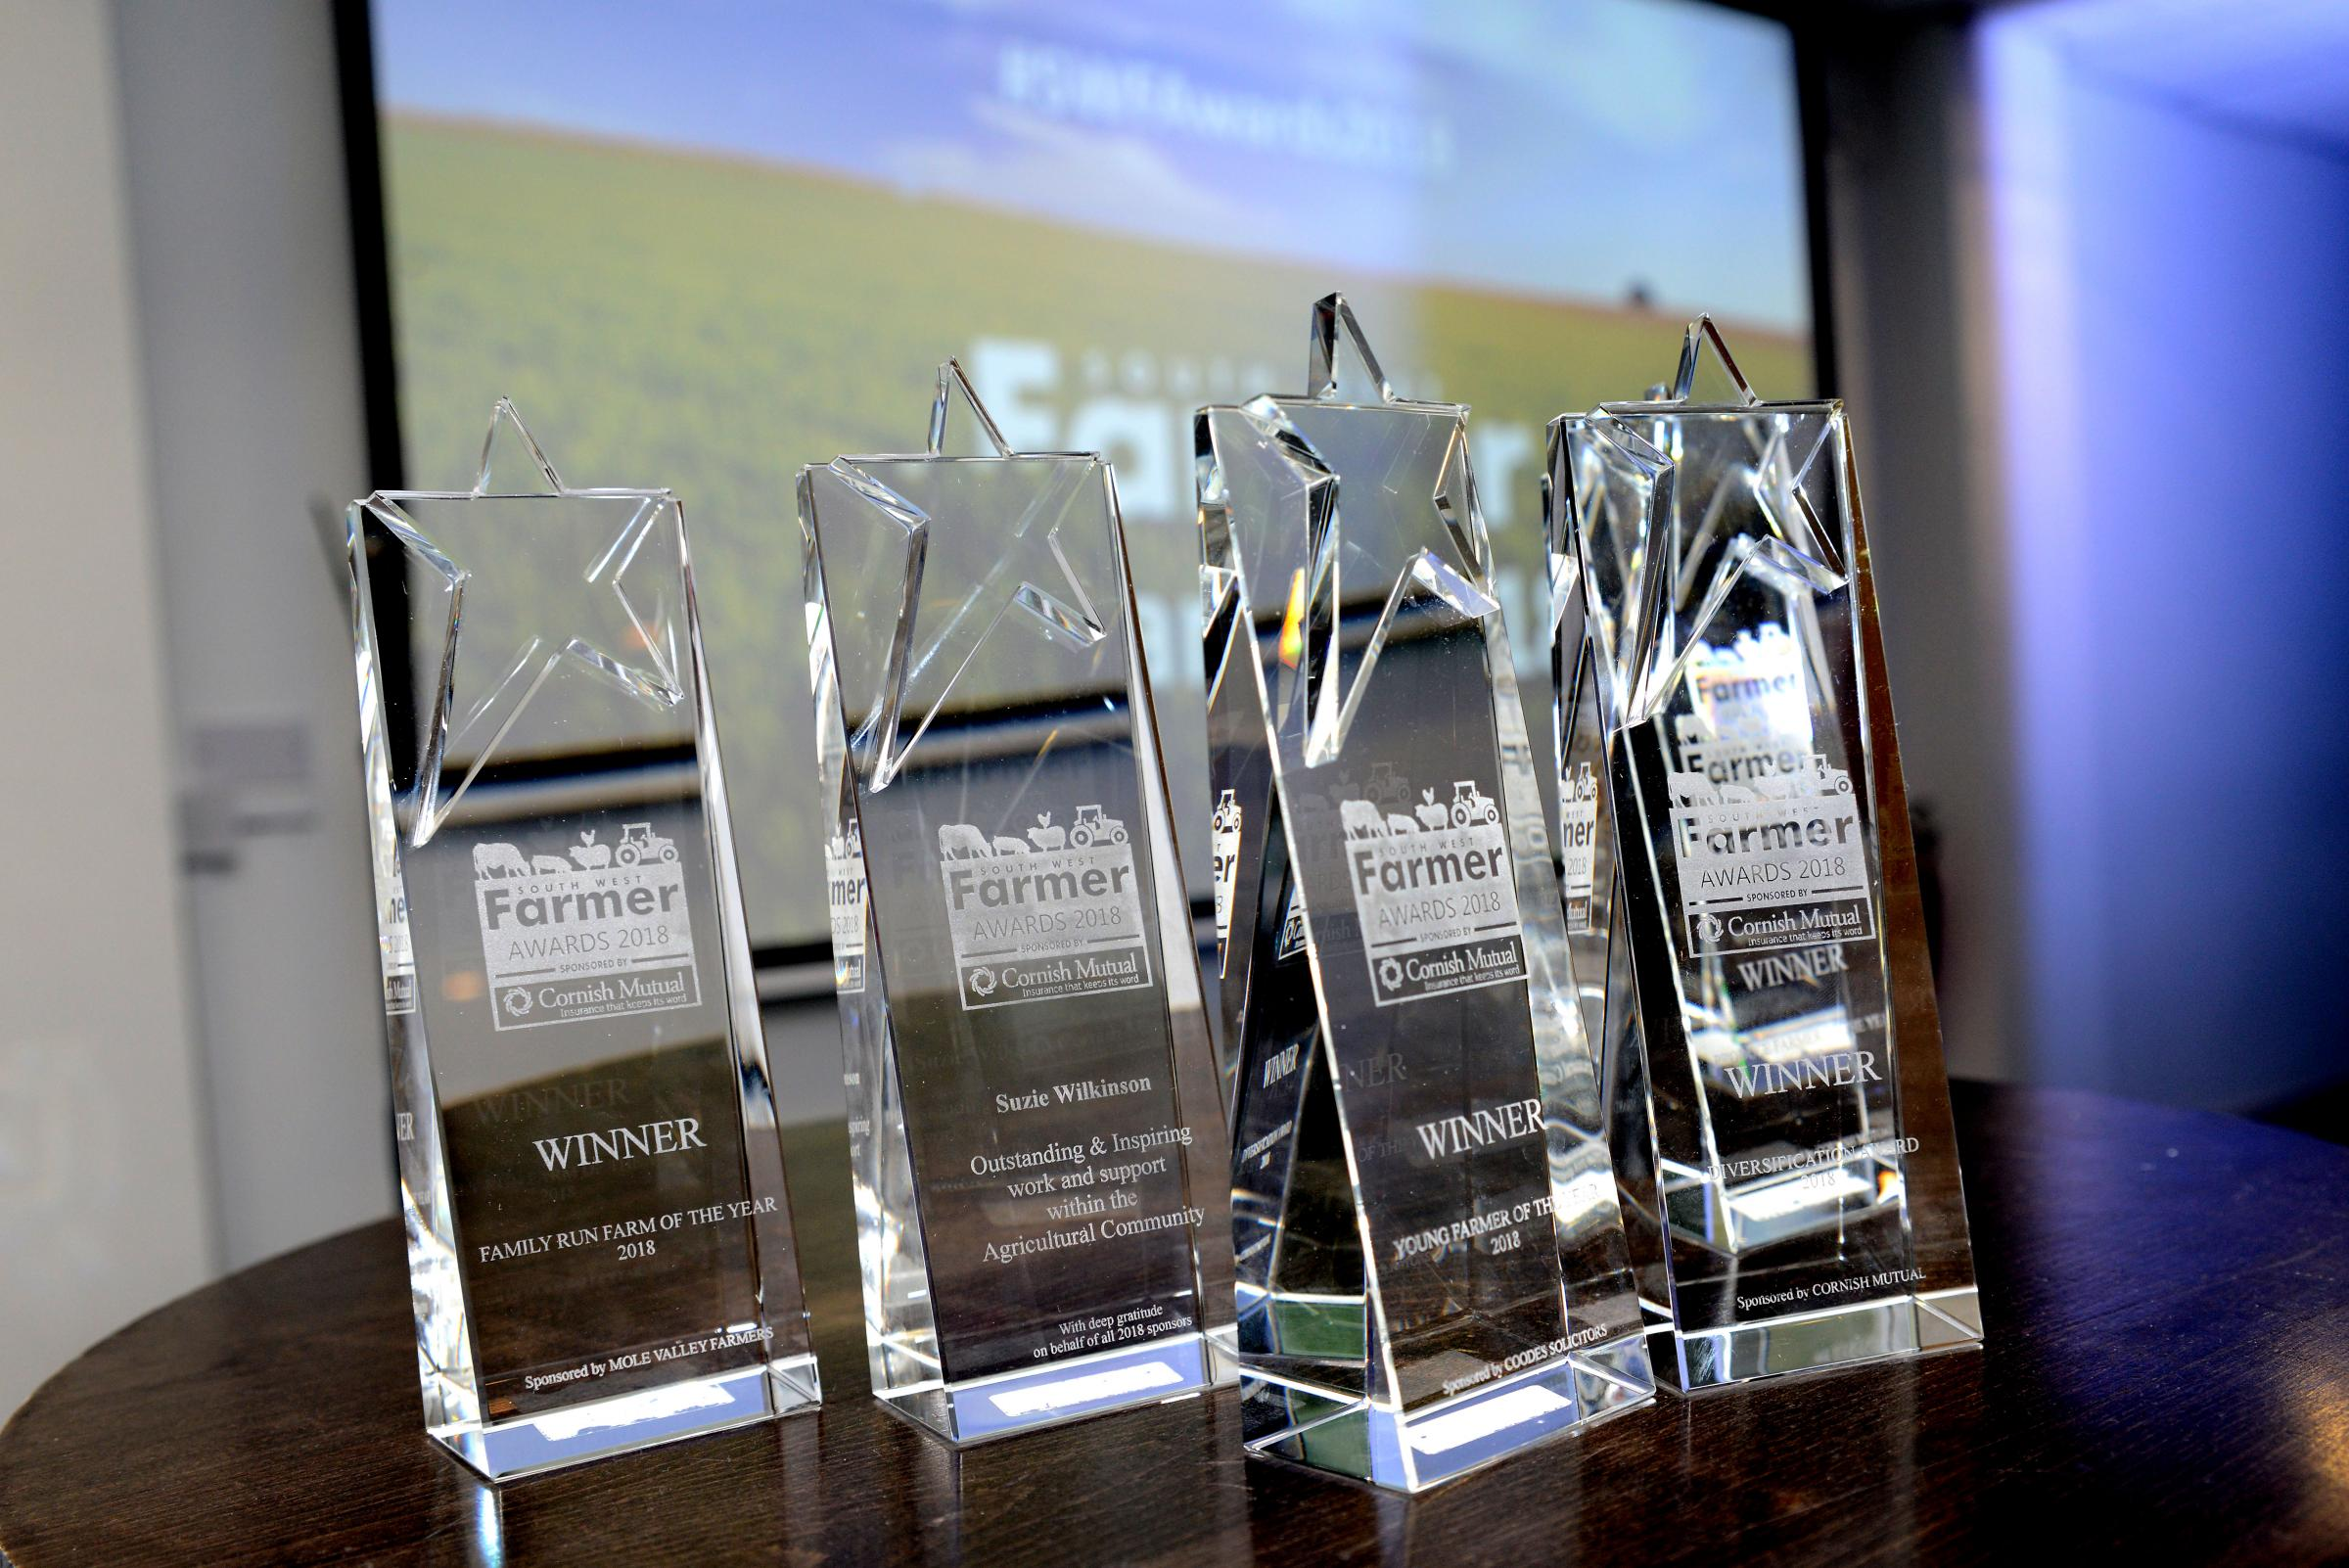 Here's your chance to put forward nominees for farming awards